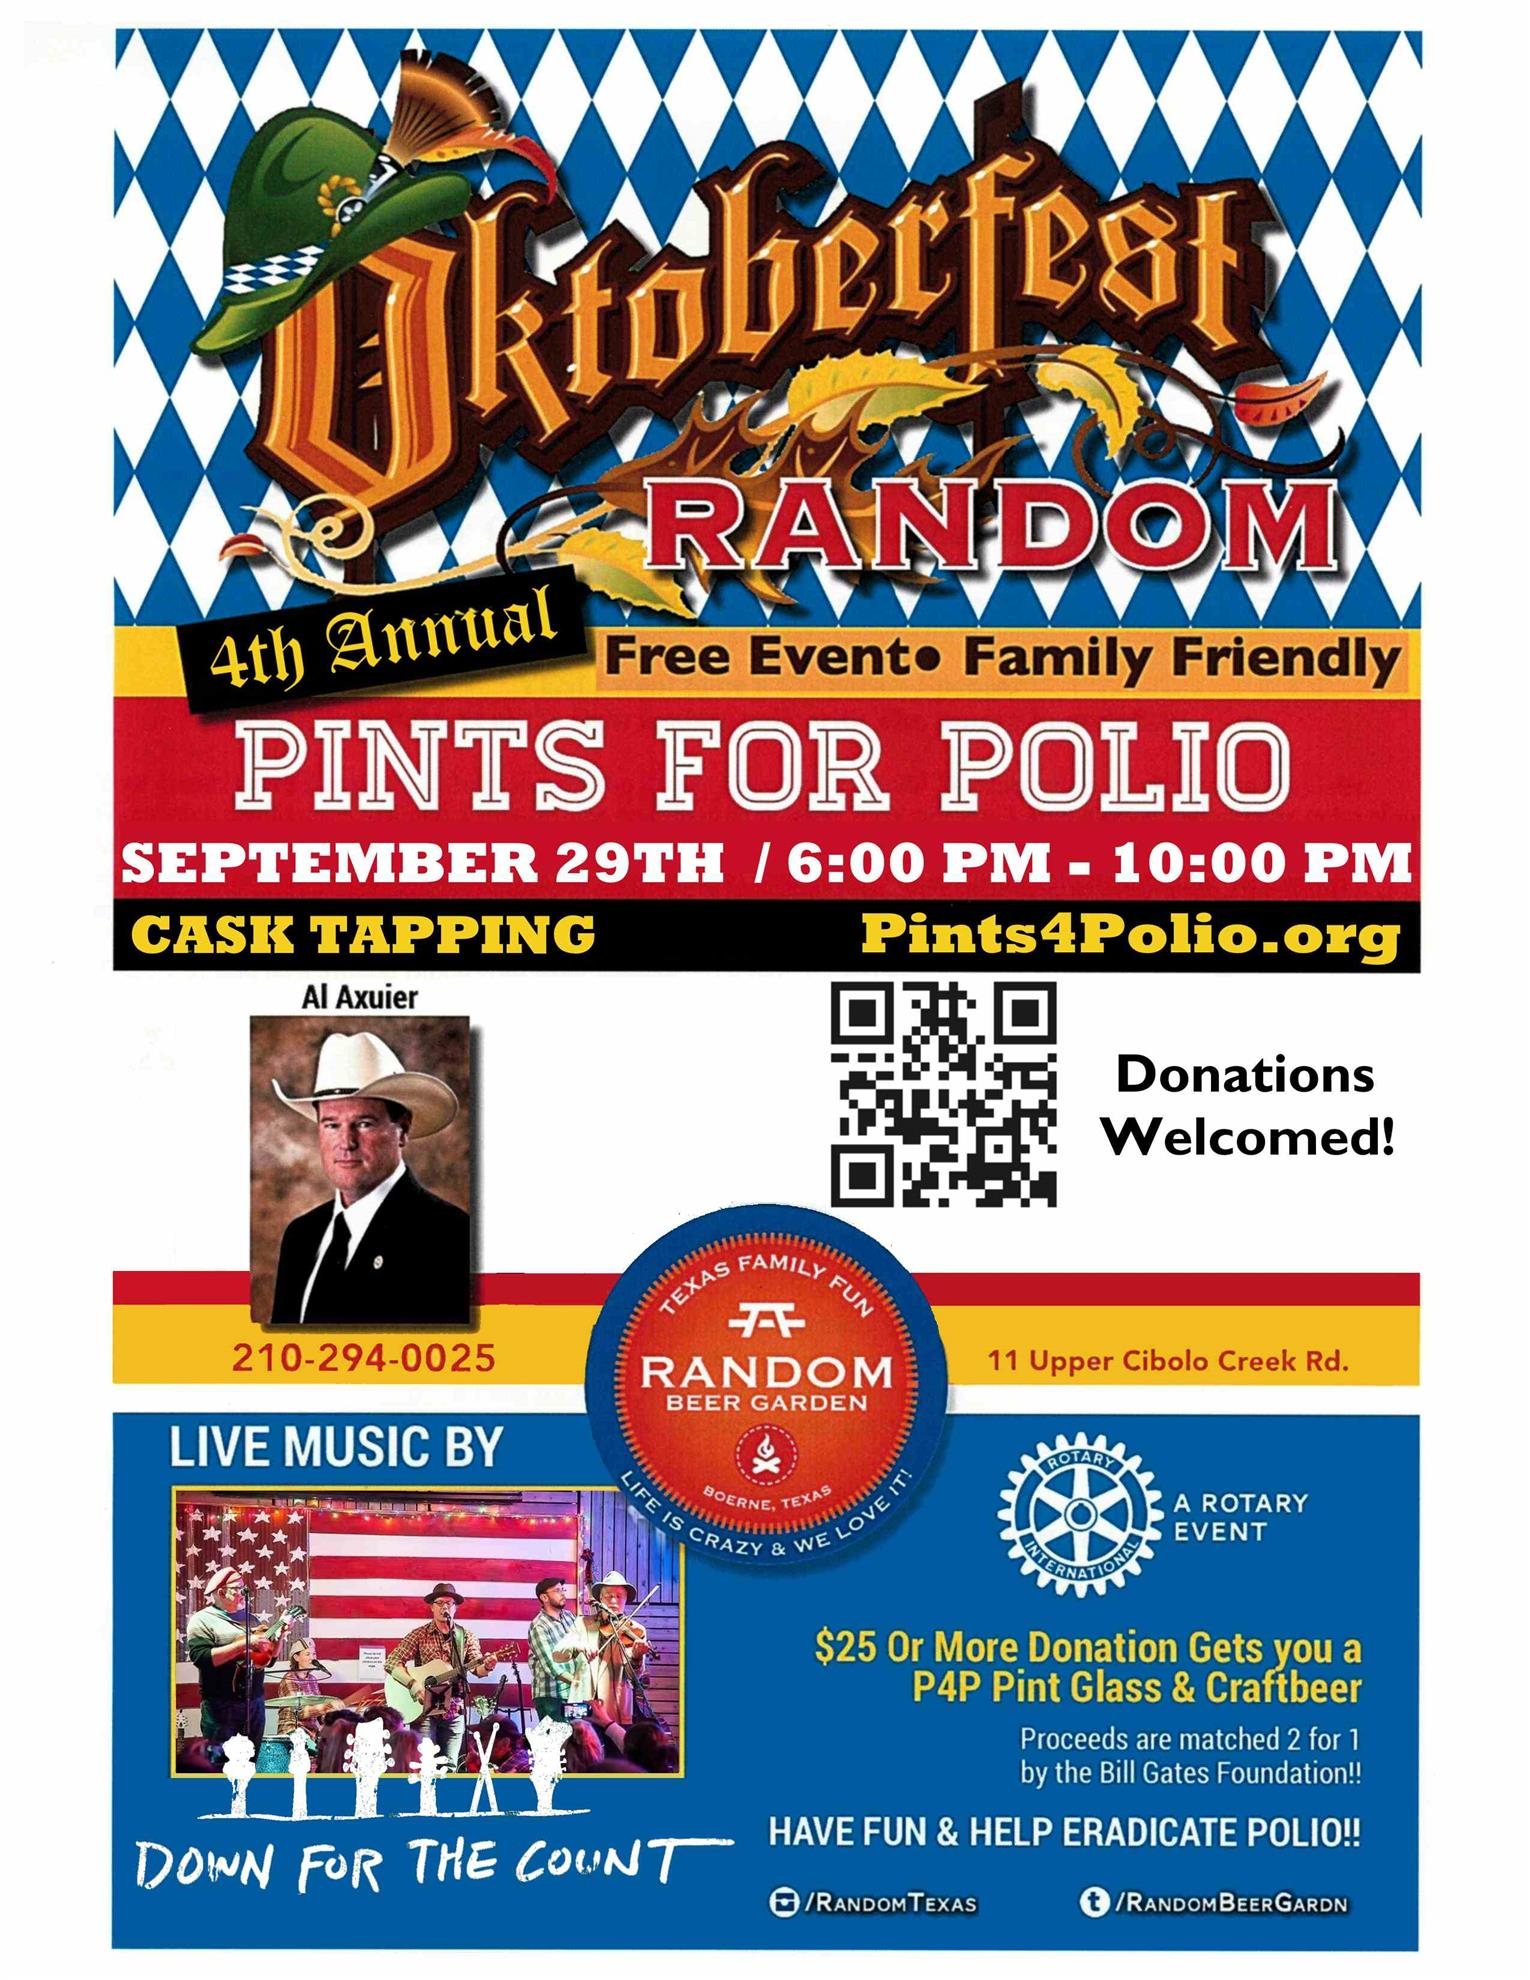 Pints for Polio flyer